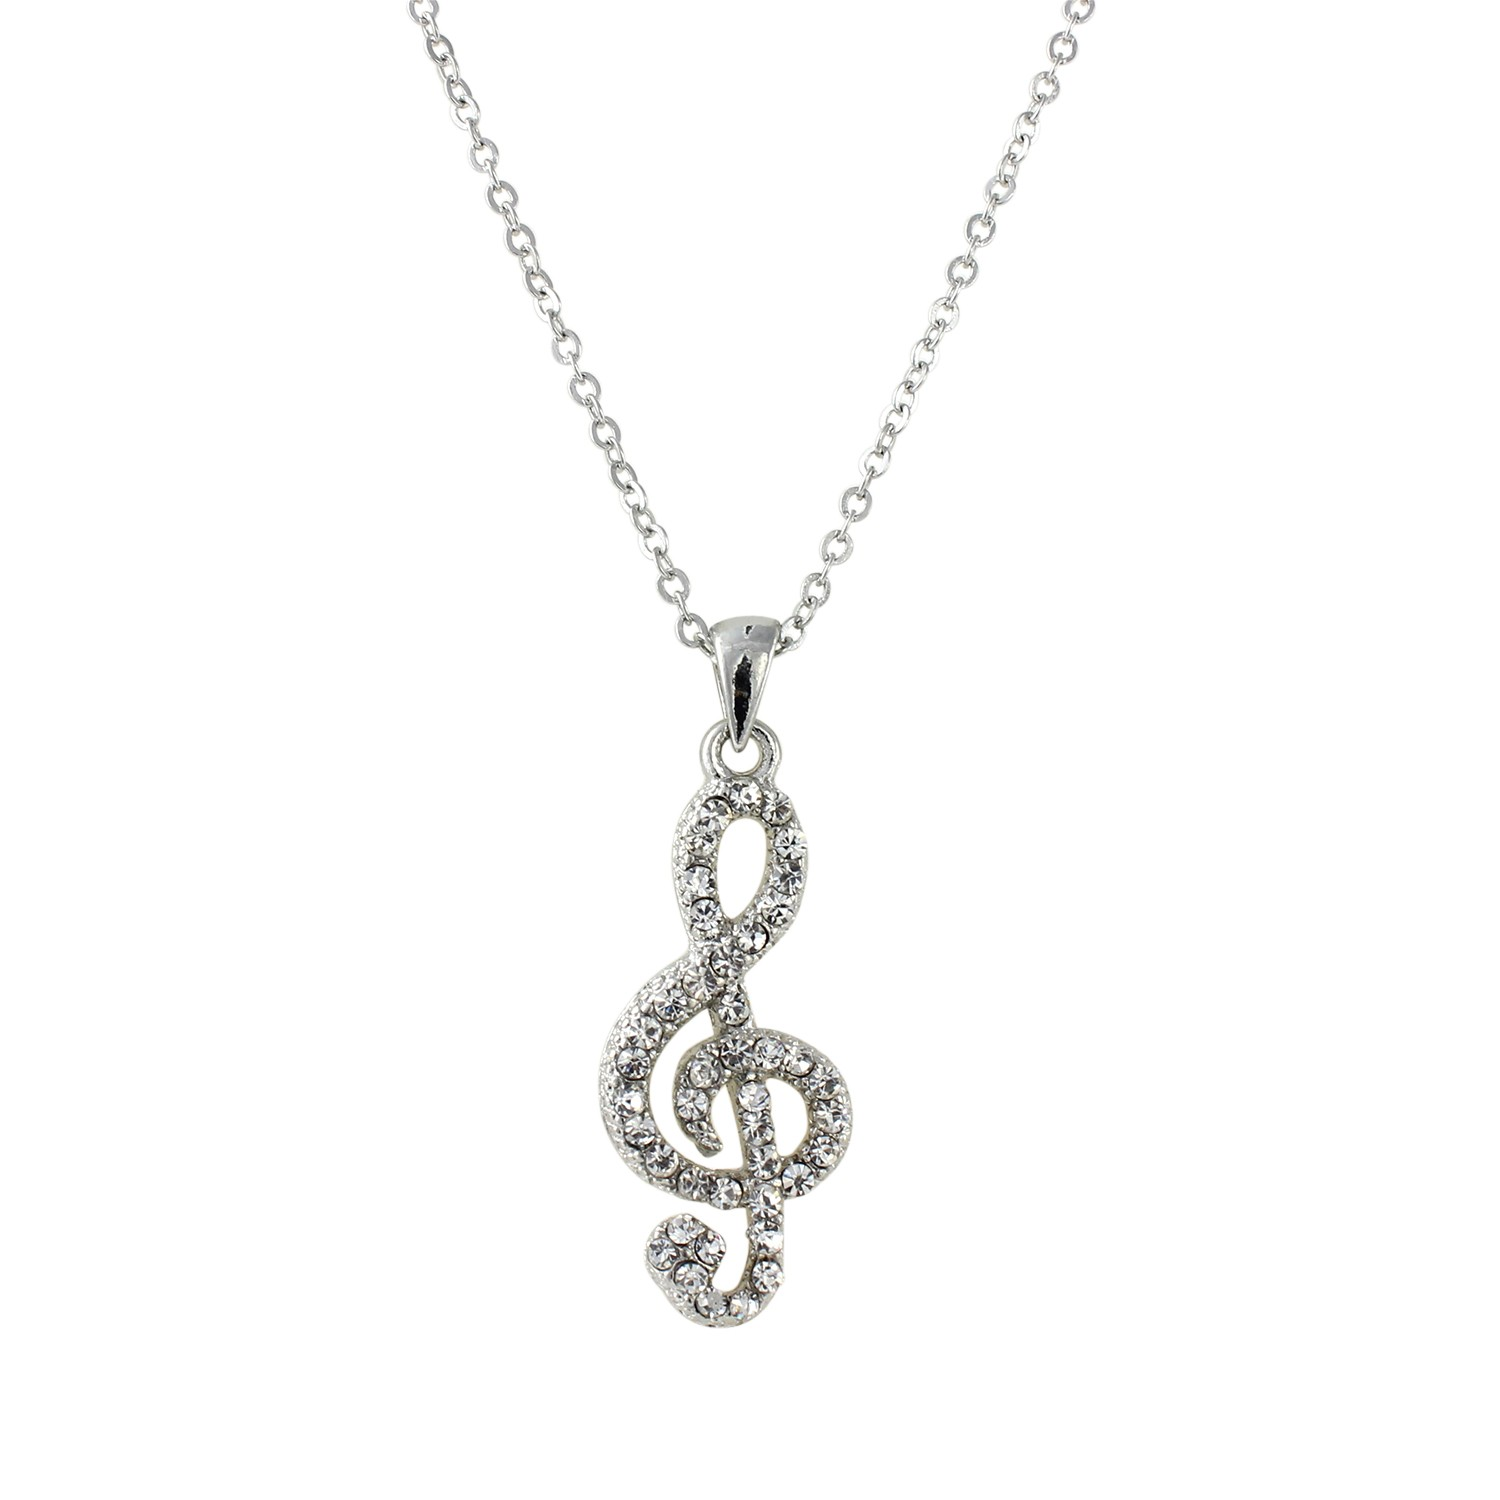 product clef sterling symbol necklace free white inch silver chain jewelry orders box note shipping overstock g cgc music watches pendant over on